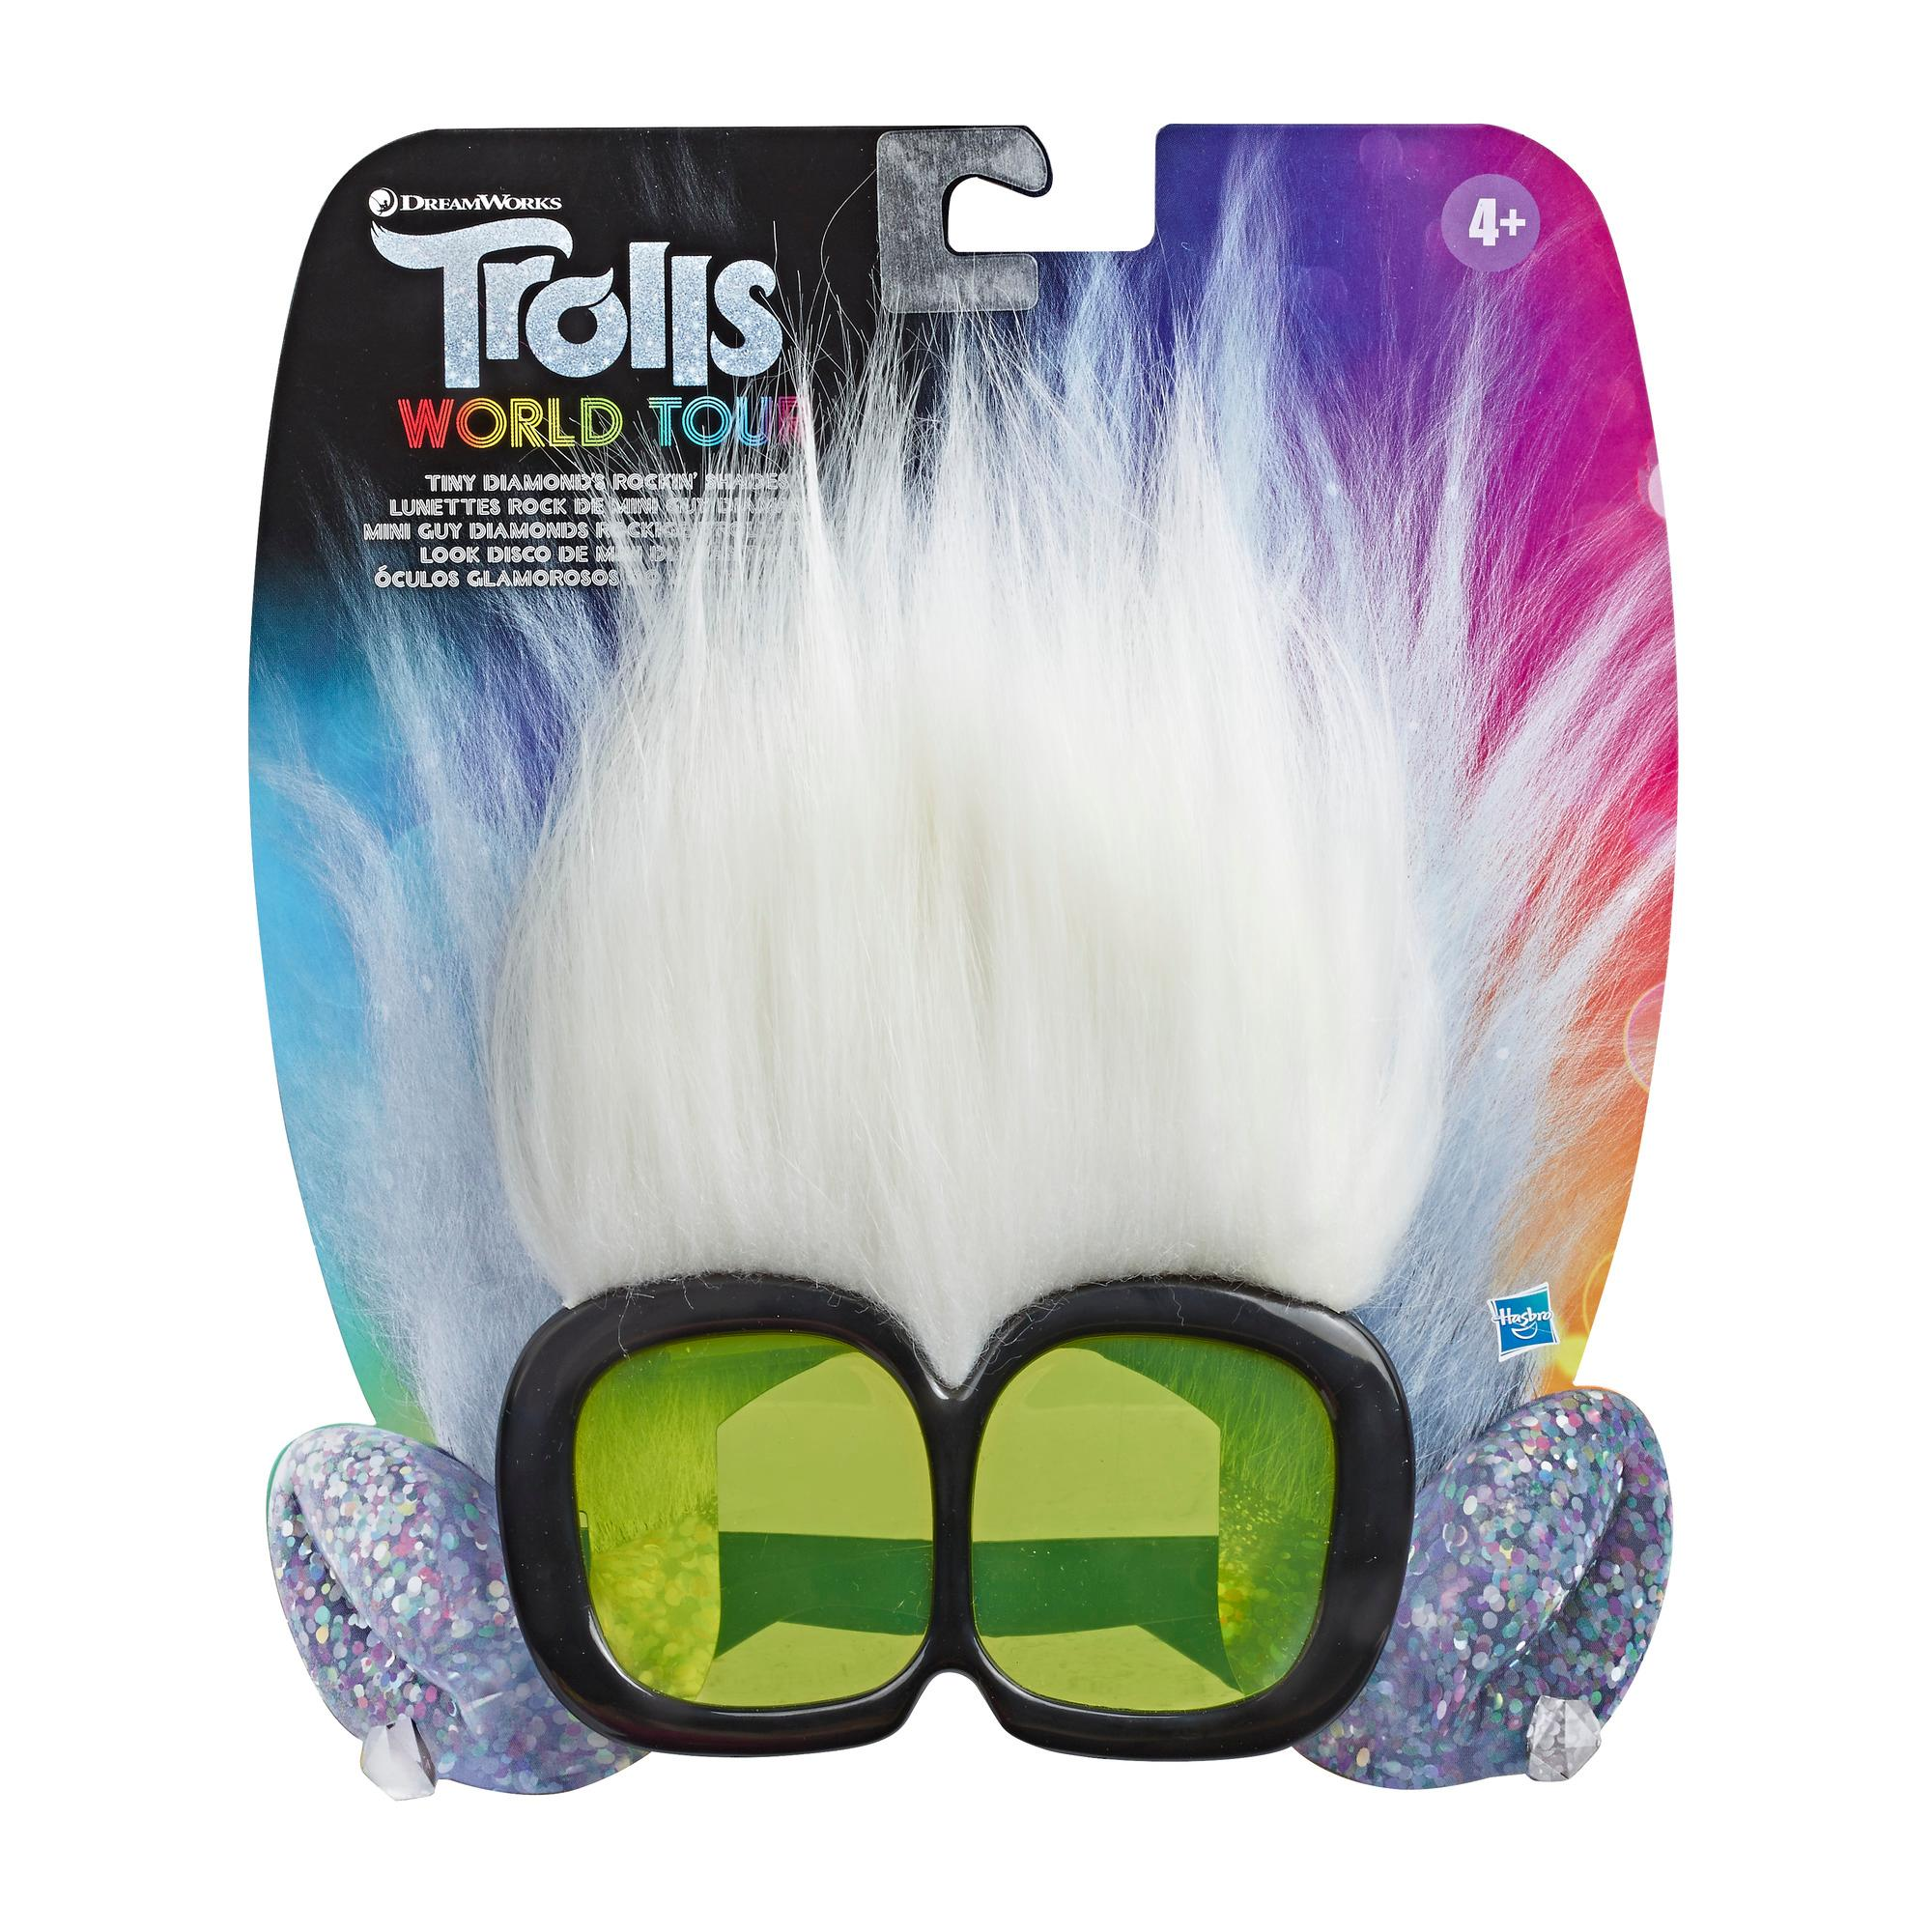 DreamWorks Trolls Tiny Diamond's Rockin' Shades, Fun Sunglasses Toy inspired by the Movie Trolls World Tour